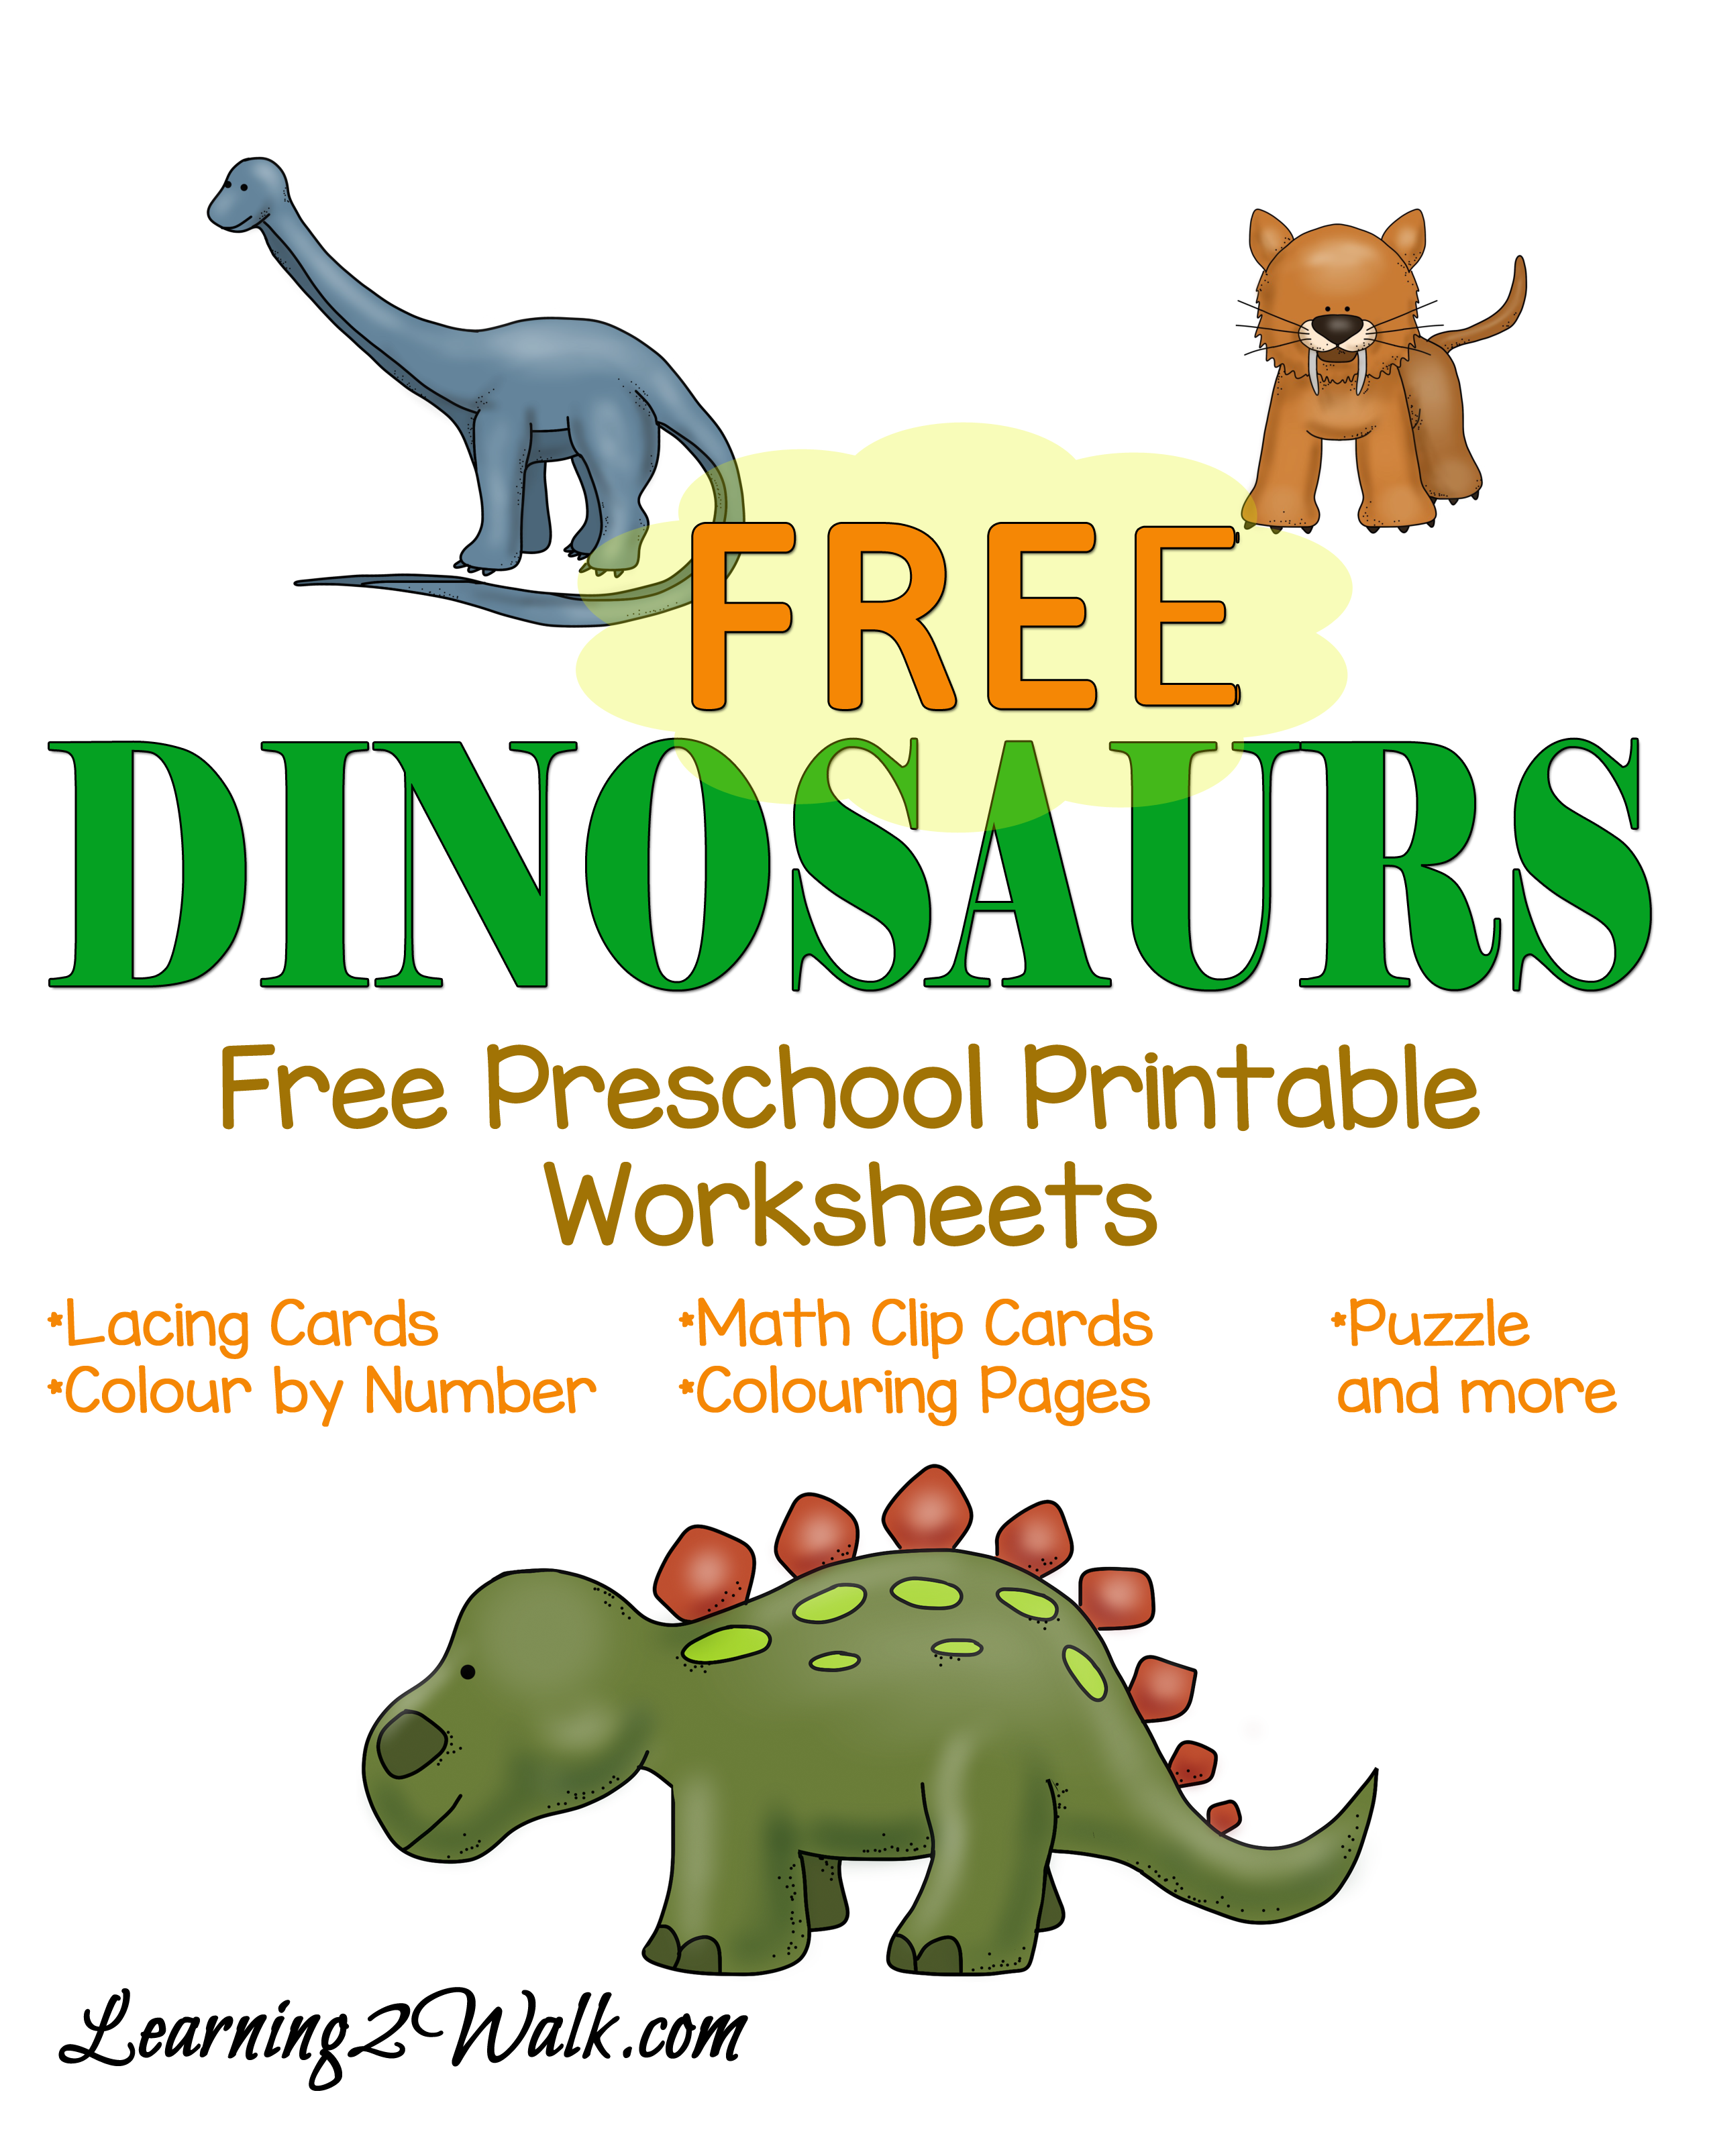 math worksheet : dinosaurs free preschool printable worksheets : Dinosaur Worksheets For Kindergarten